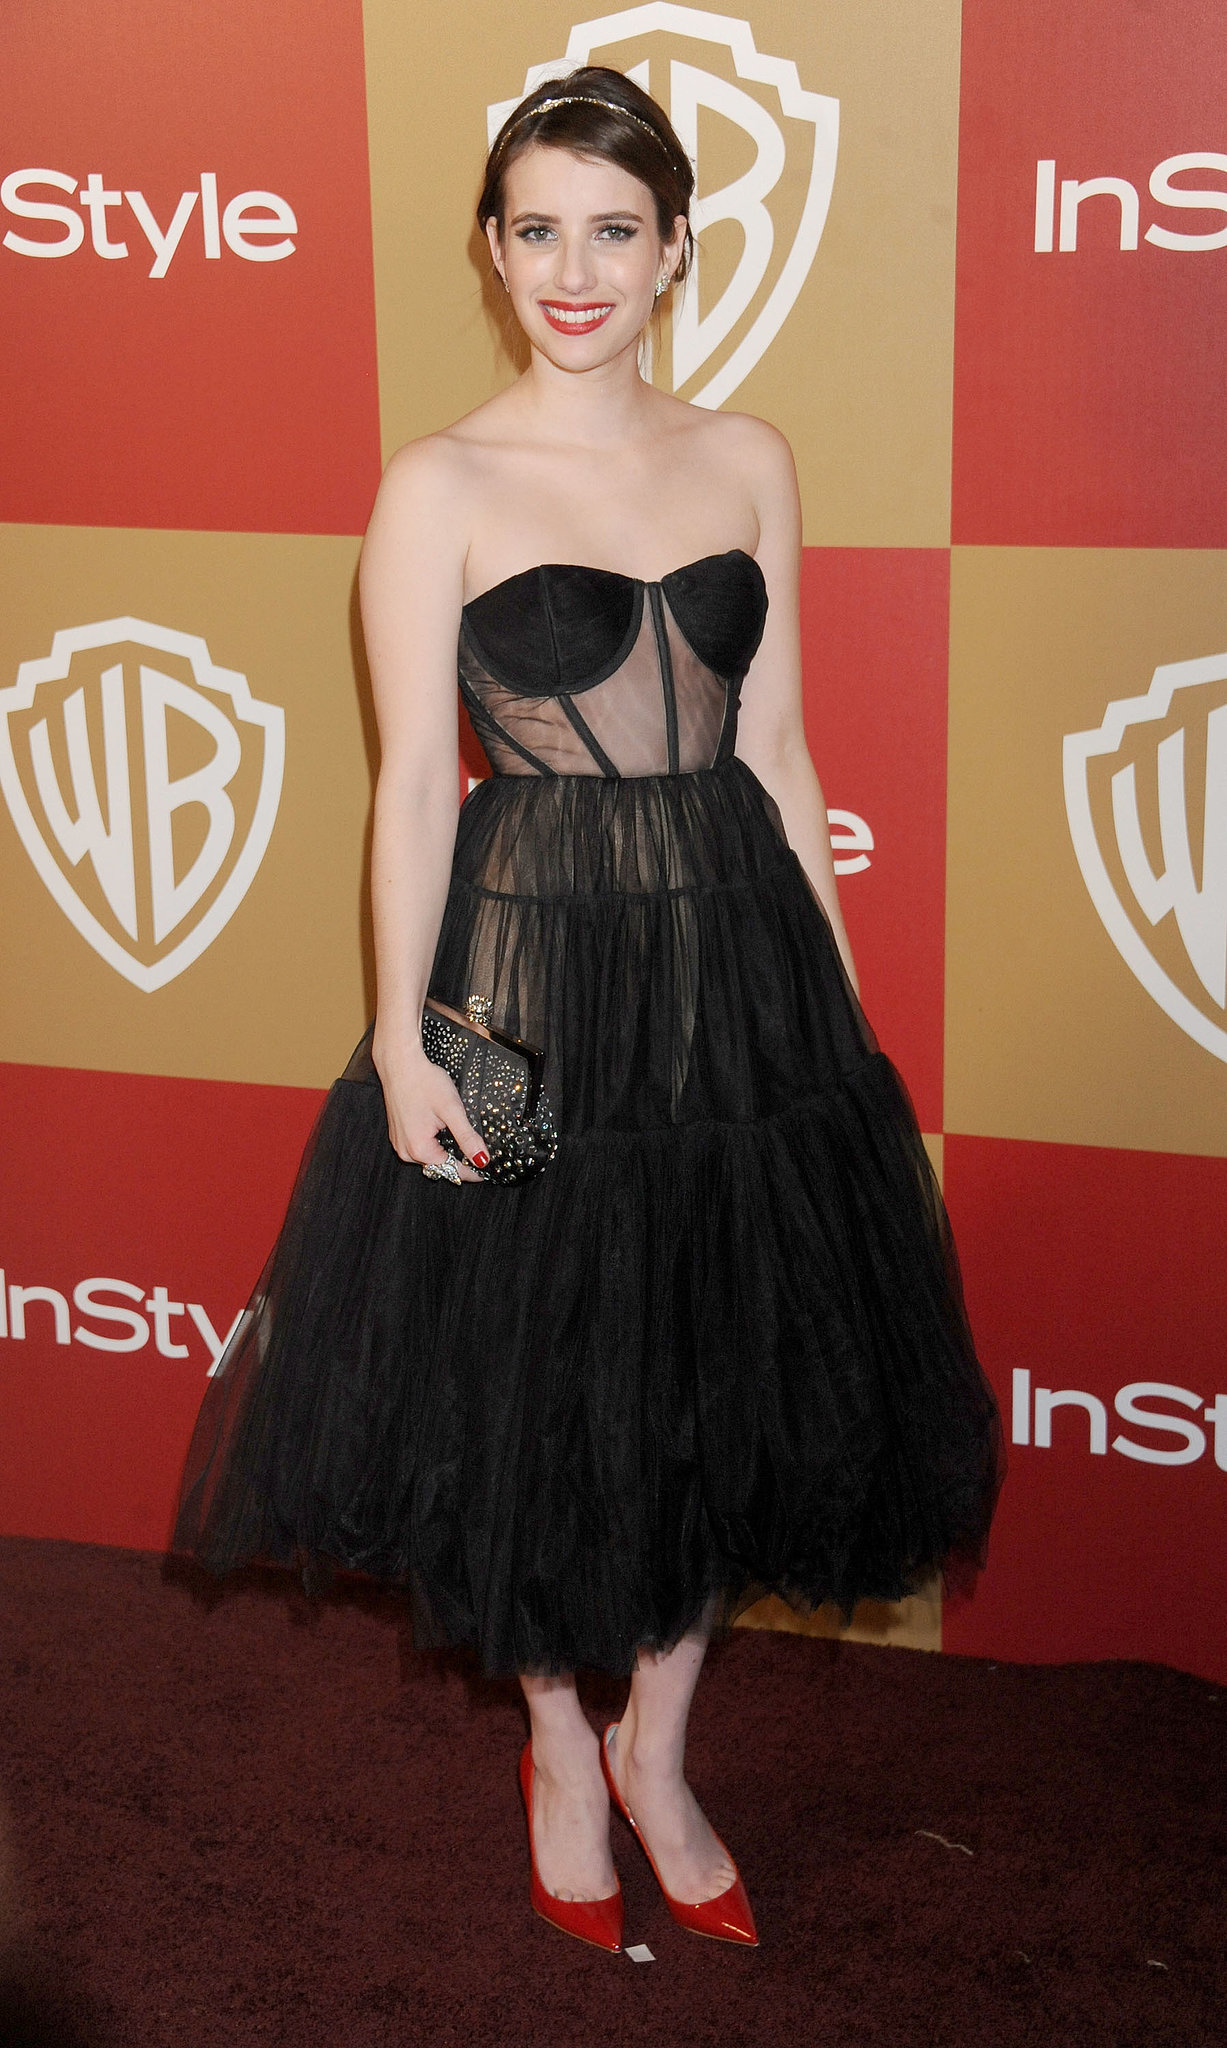 Emma wore a sexy, boudoir-inspired Maria Lucia Hohan dress to the InStyle Golden Globes afterparty in January 2013.